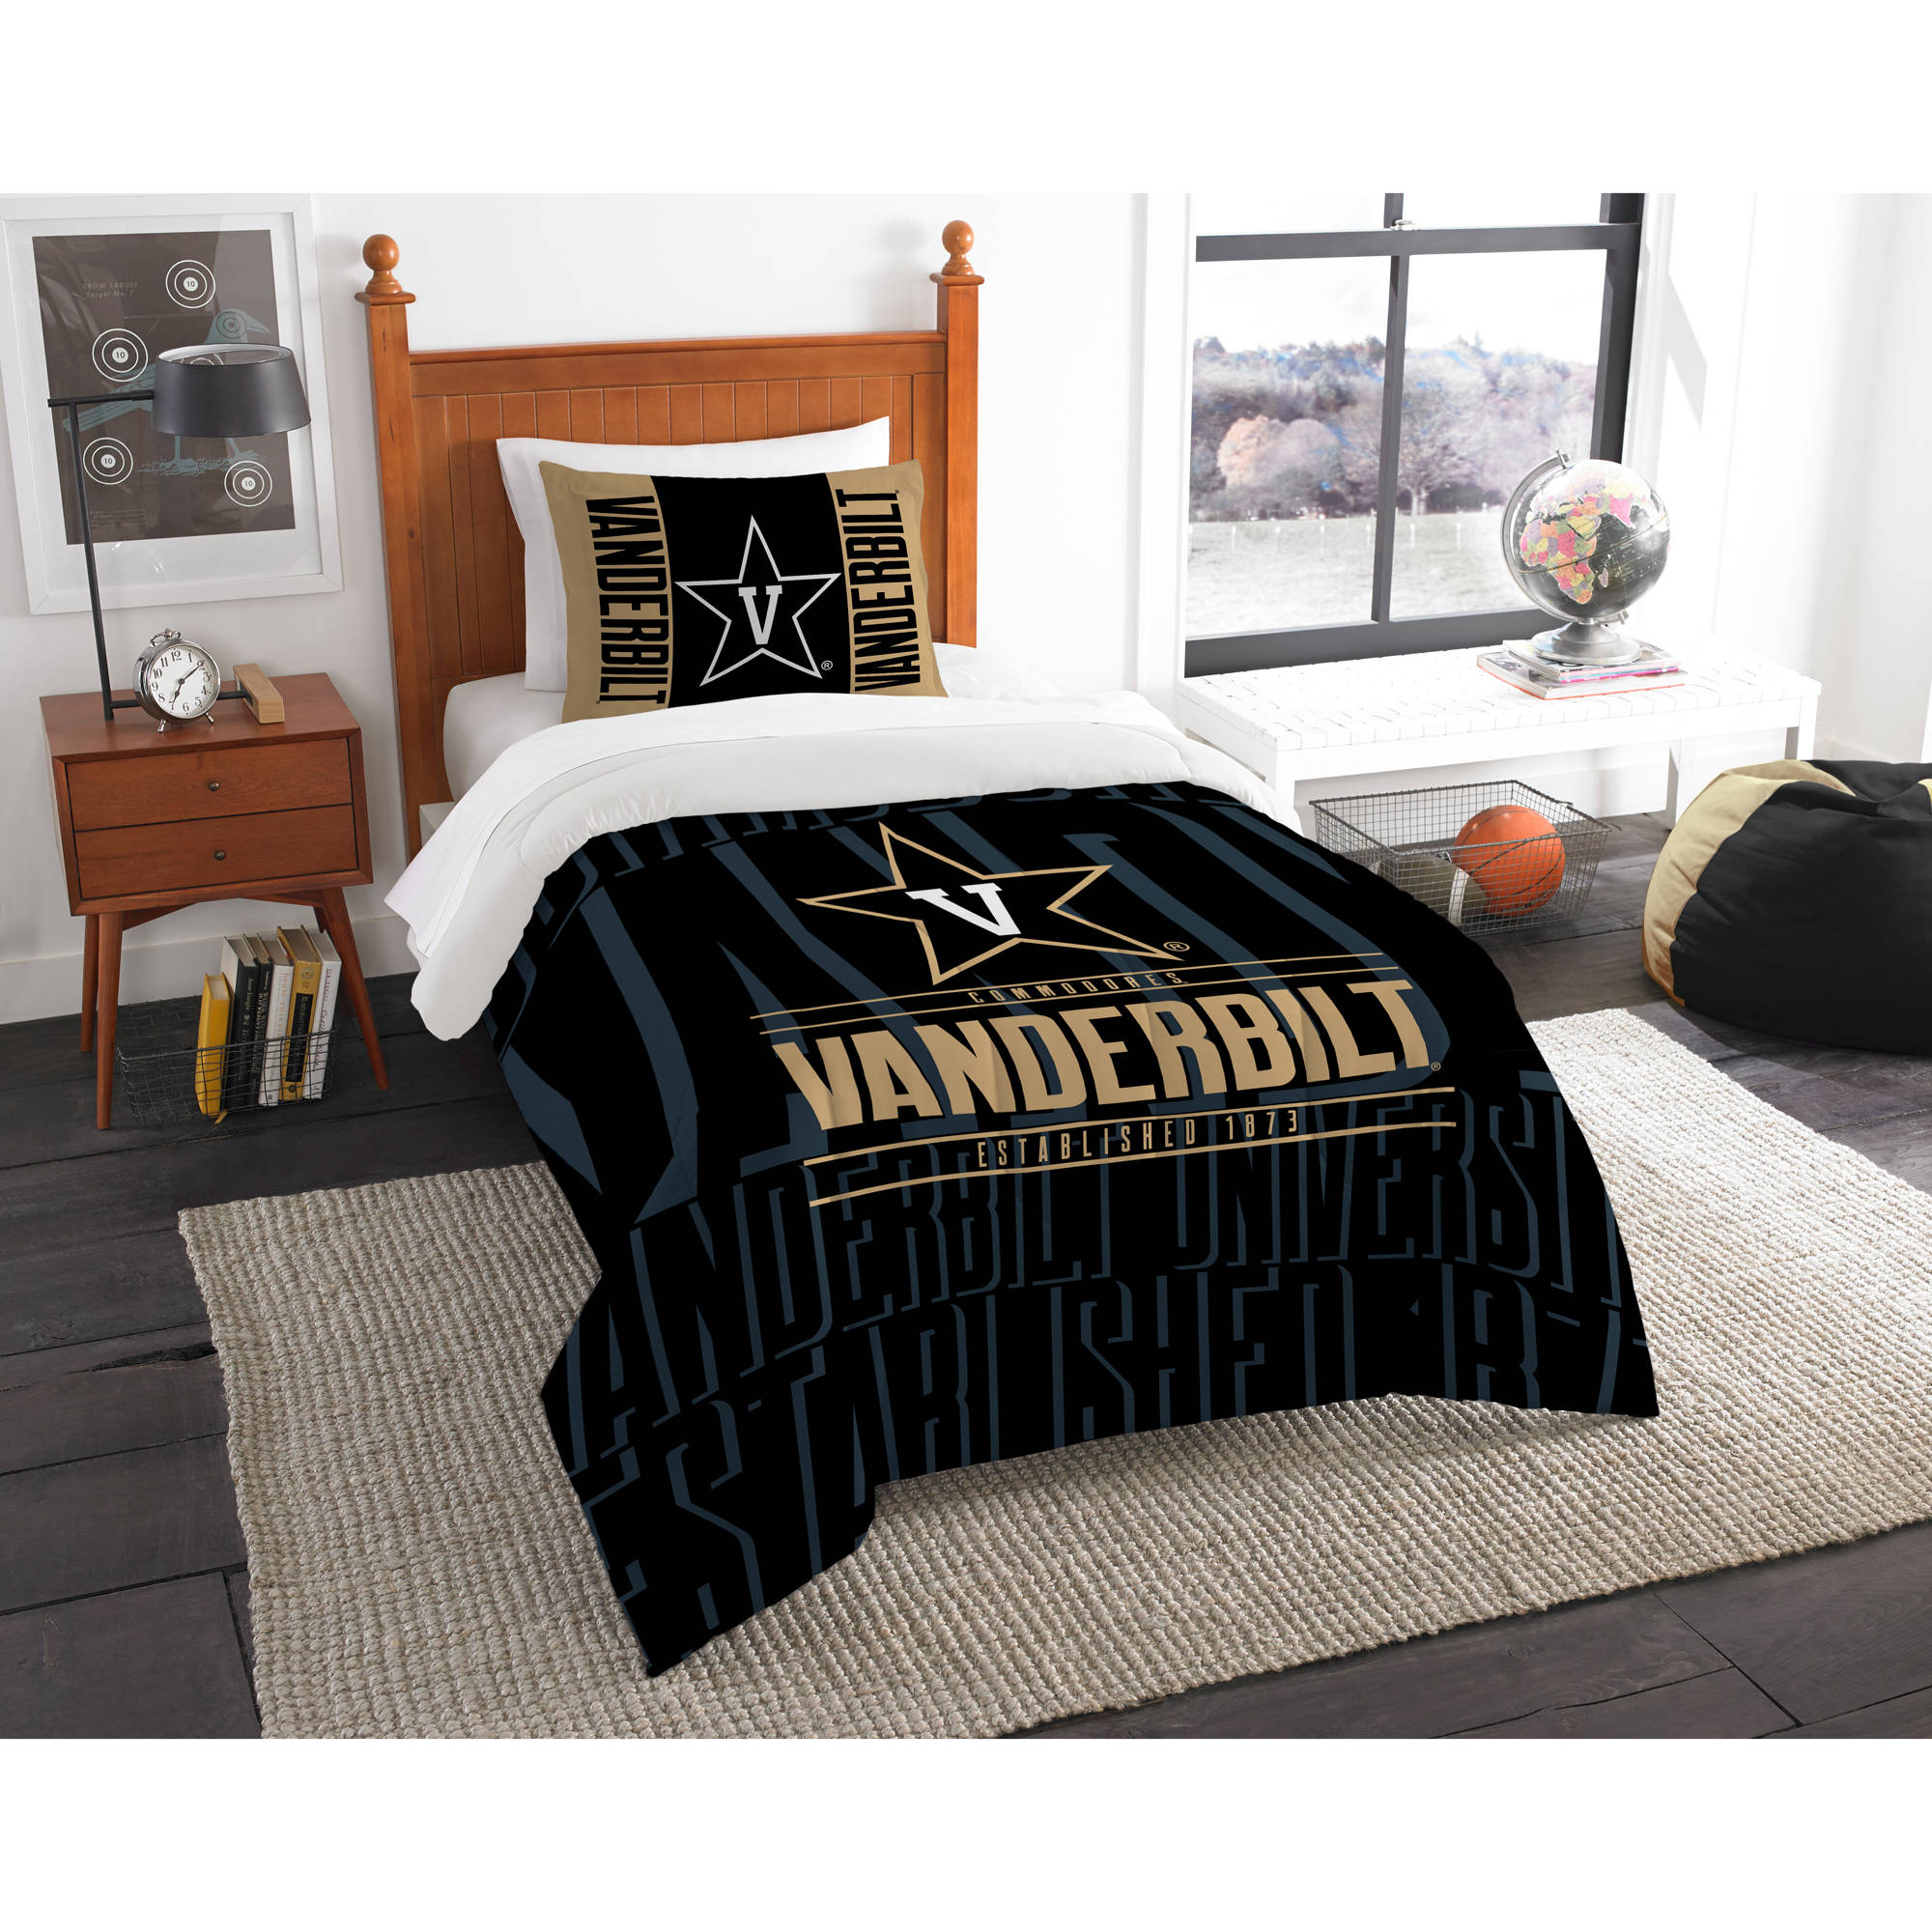 "NCAA Vanderbilt Commodores ""Modern Take"" Bedding Comforter Set"